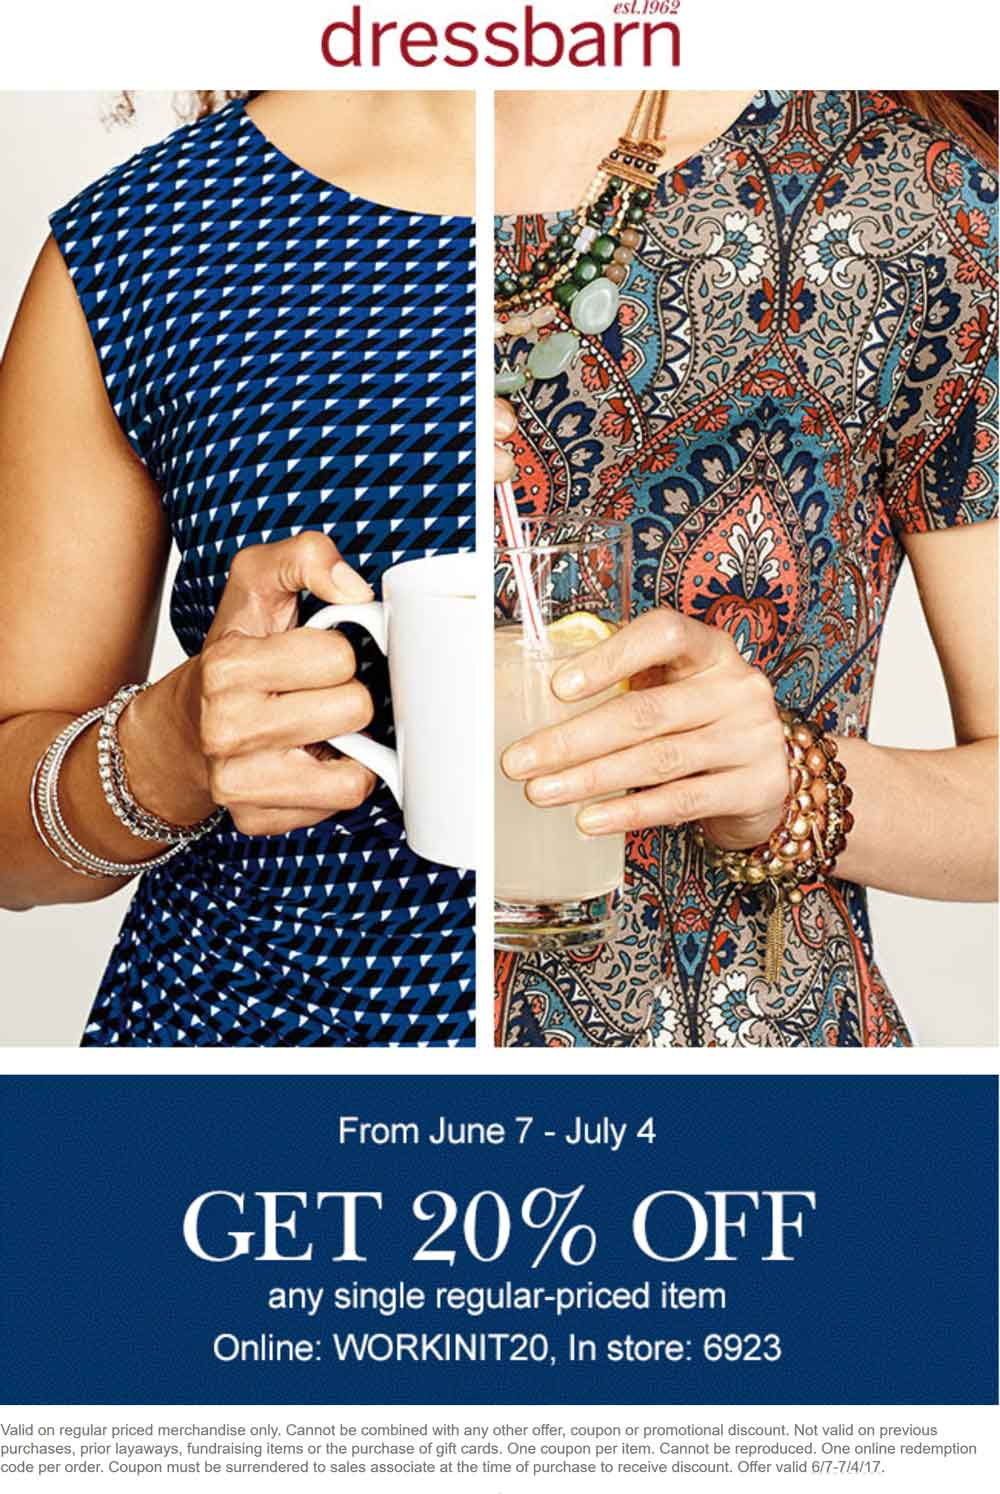 Dressbarn Coupon August 2018 20% off a single item at Dressbarn, or online via promo code WORKINIT20